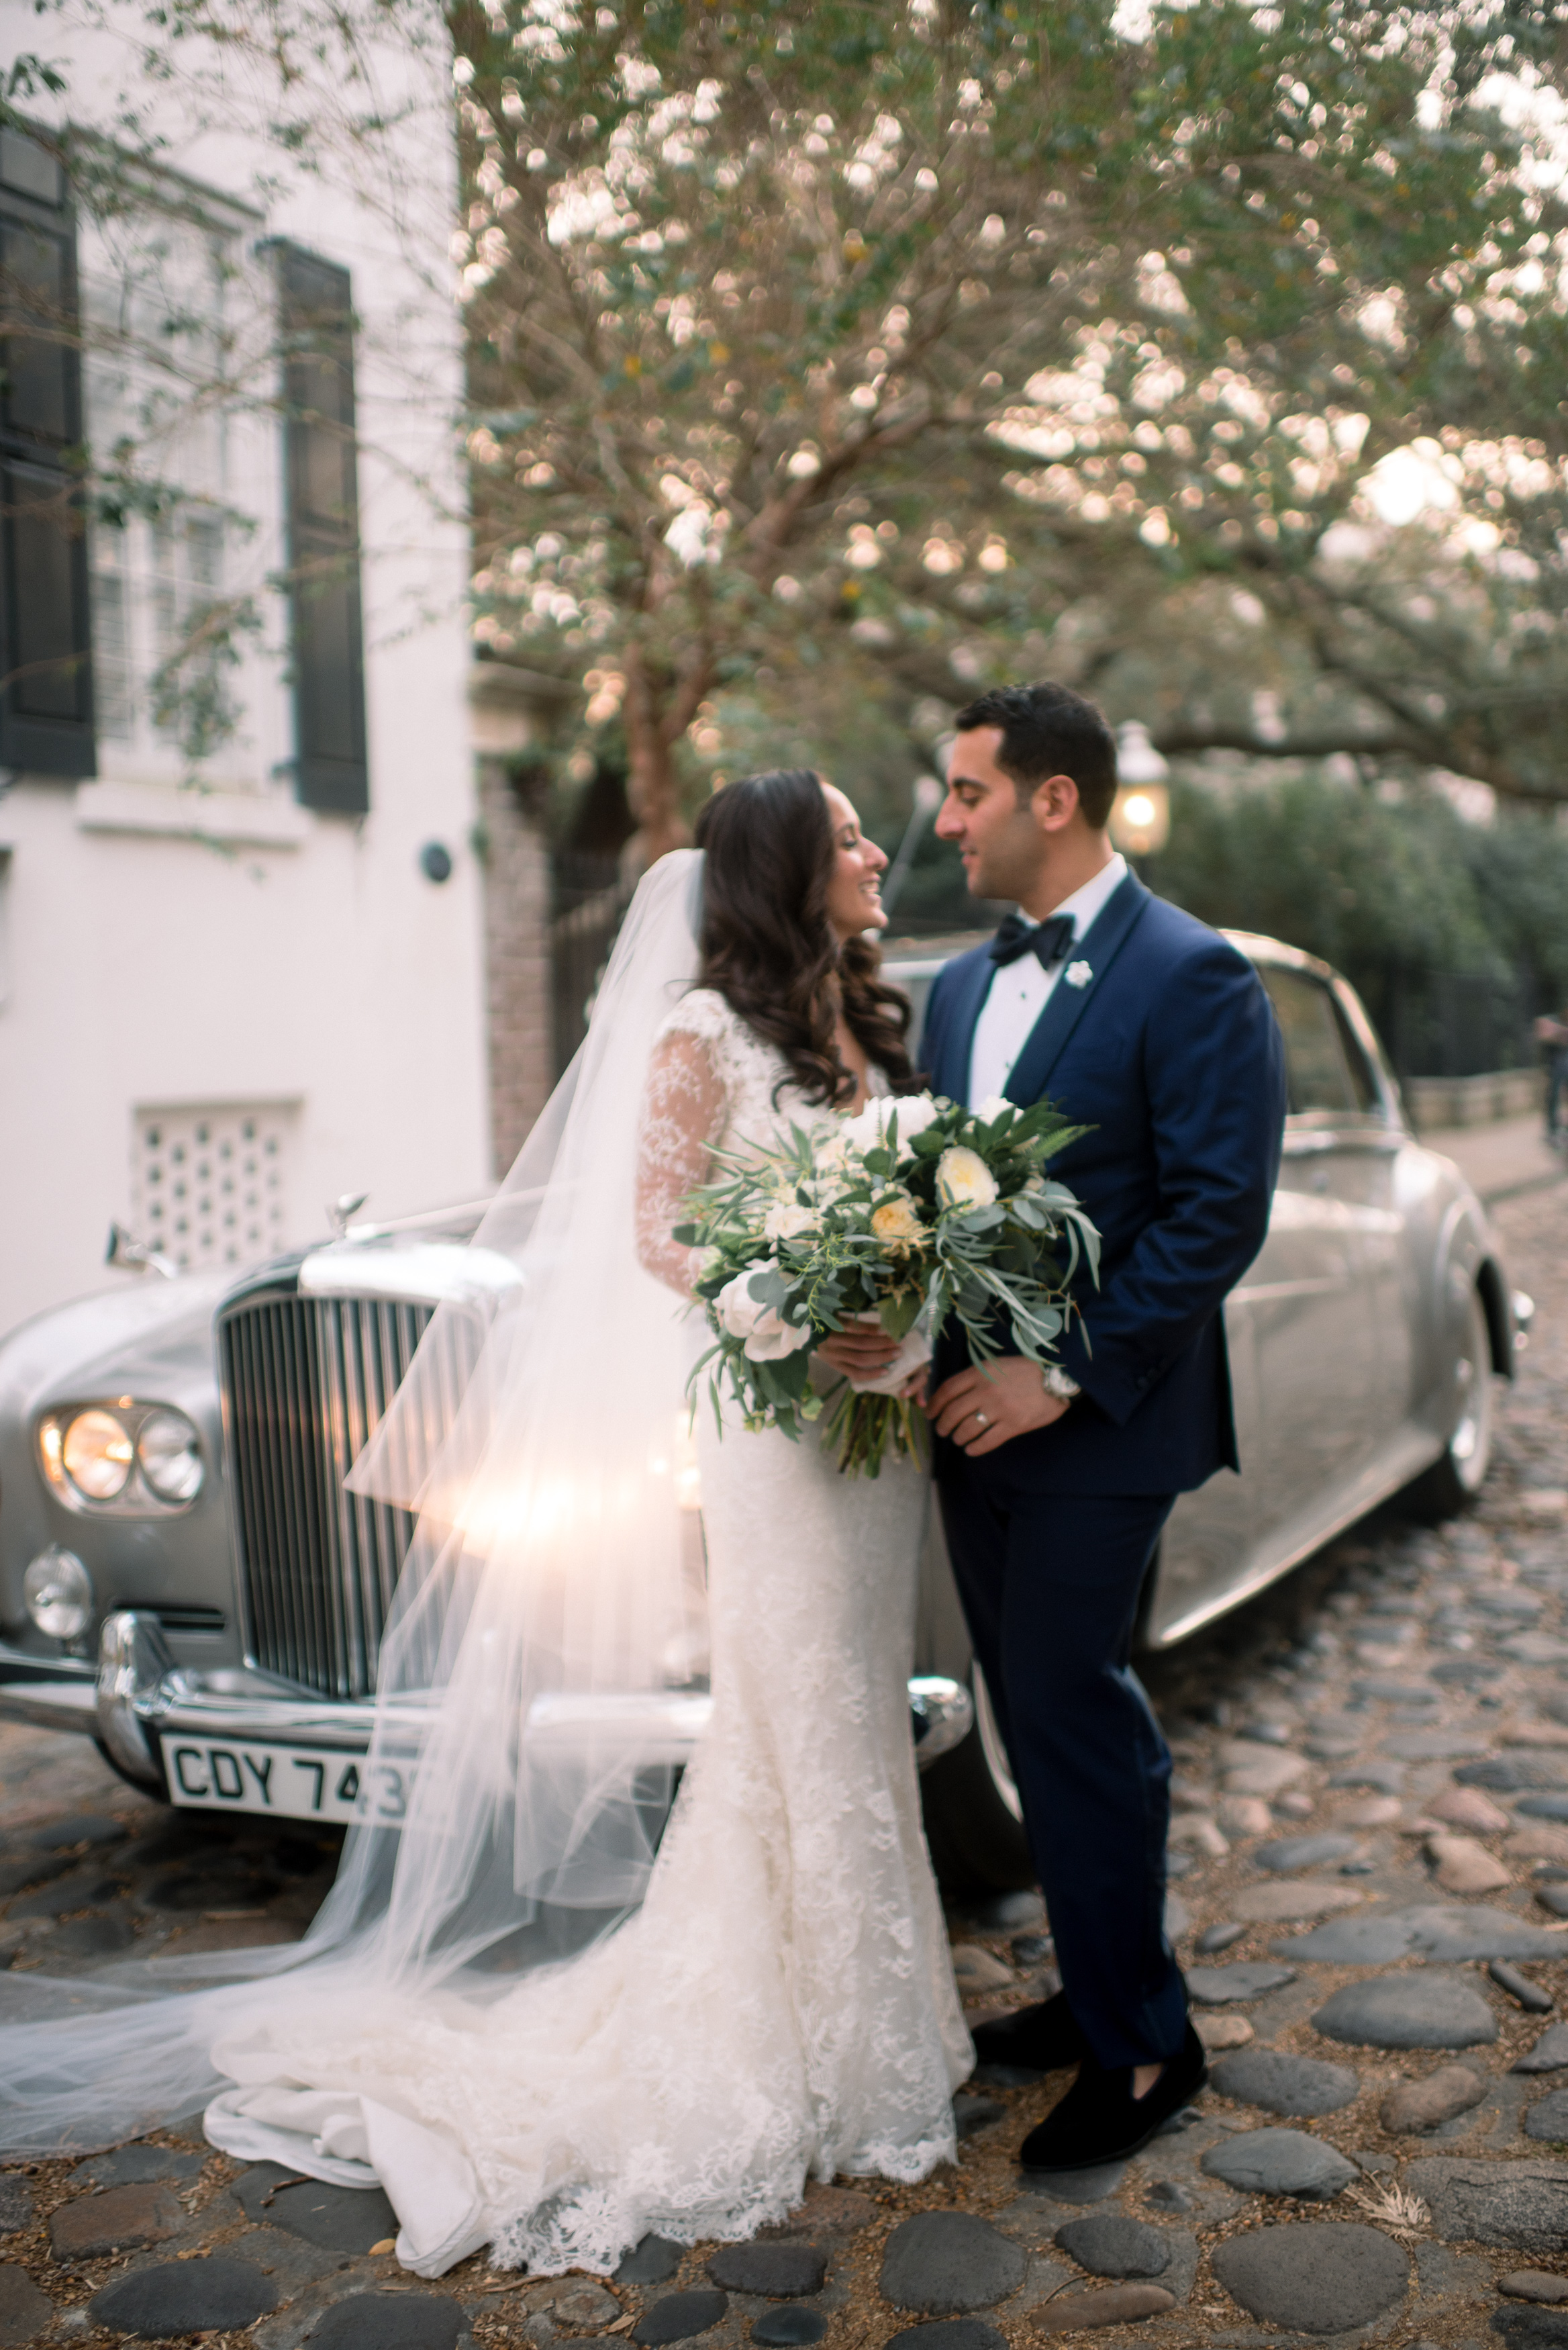 Charleston Bride wearing Ines di Santo gown in front of vintage Rolls Royce  //  A Lowcountry Wedding Magazine & Blog